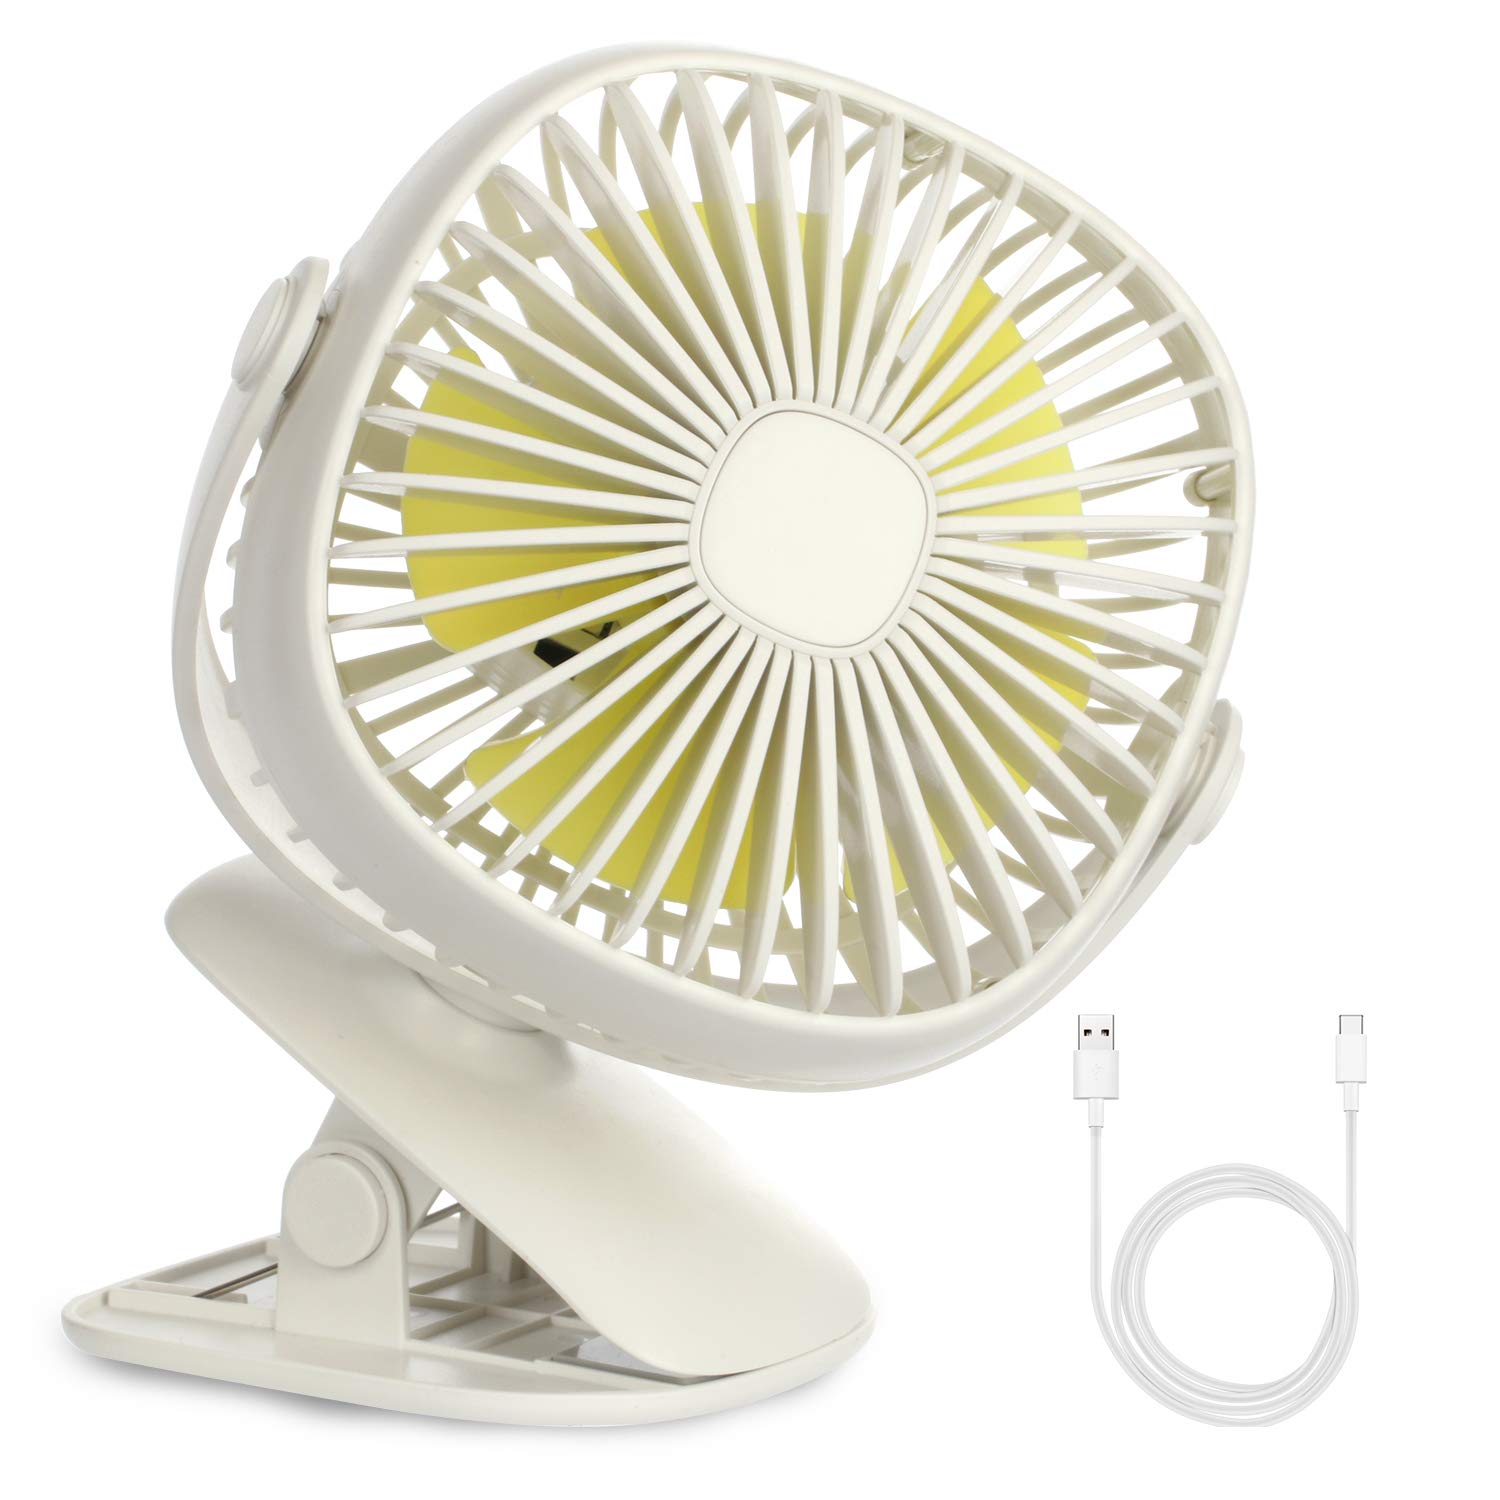 Baby Stroller USB Clip Fan with Night Light, 2 in 1 Desk Light Clip Fan,Rechargeable Mini Fan,2000mAh Battery ,360 Degrees Rotation Cooling Fan Powered Portable for Travel,Camping, Fishing,Home Office